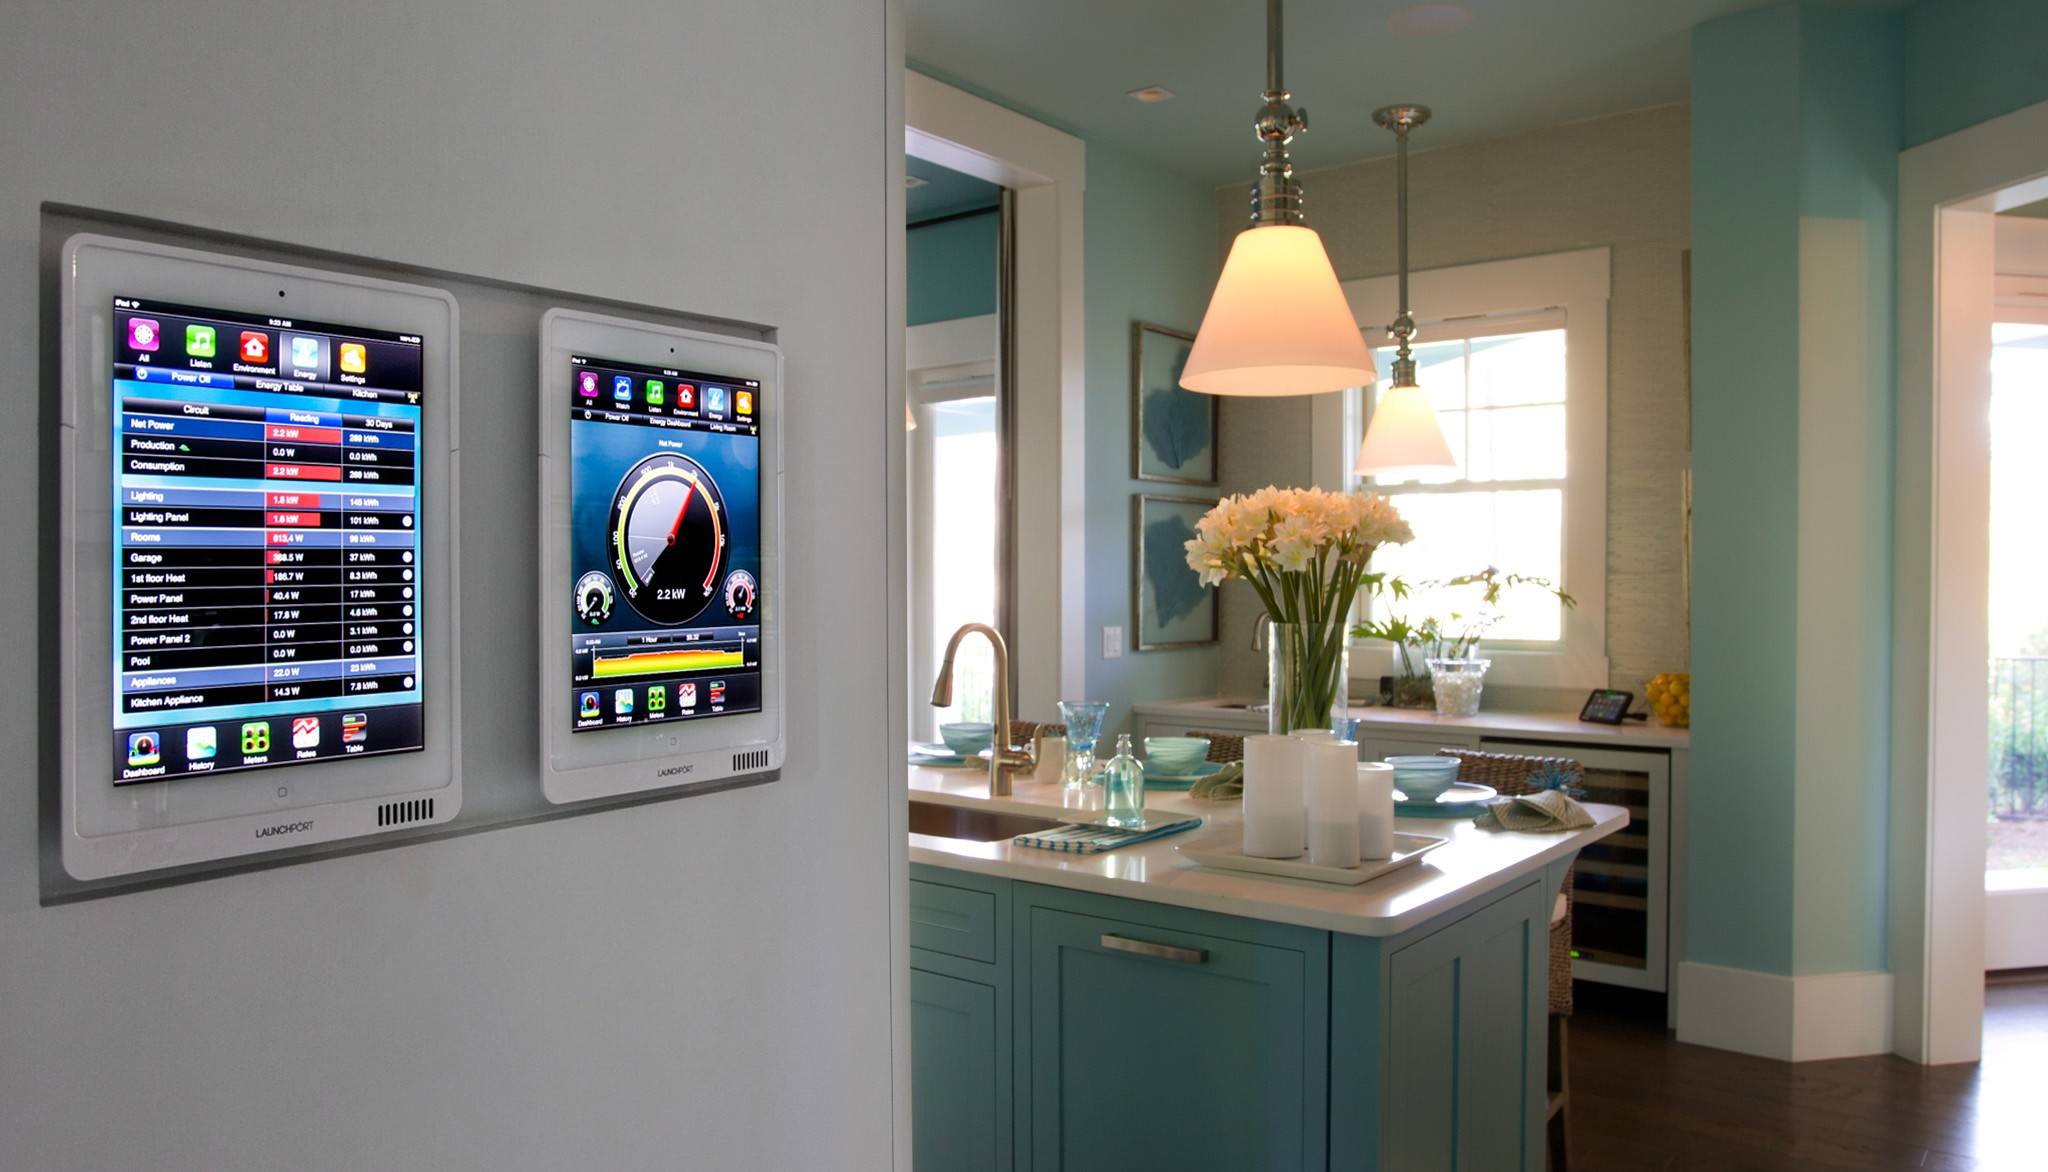 Smart kitchen high-tech style